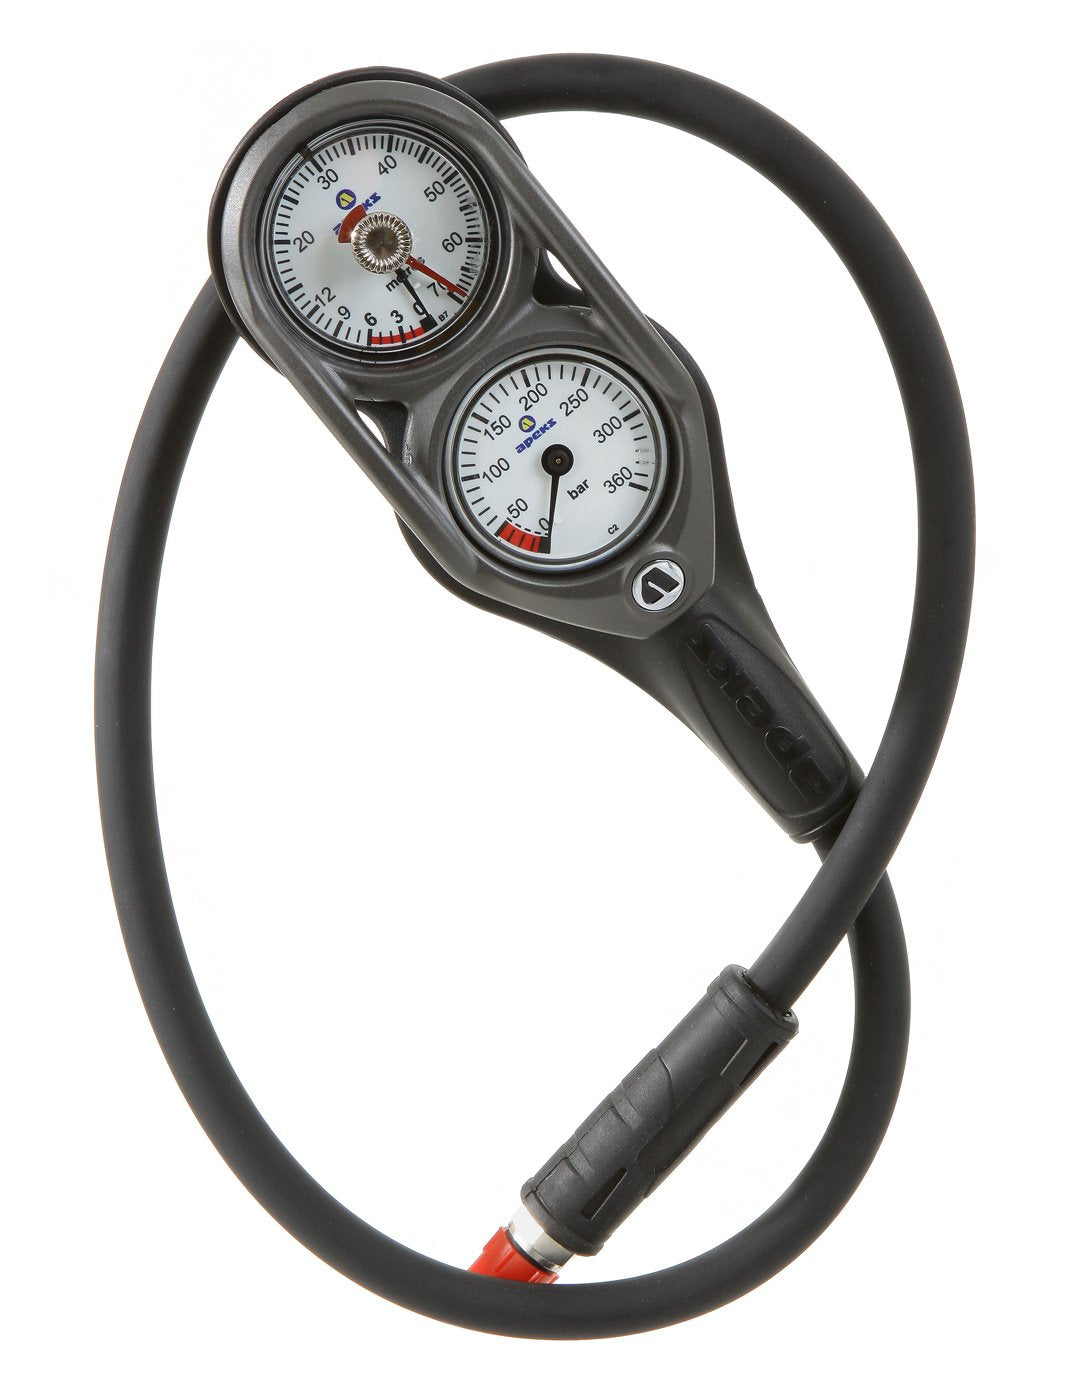 Image of Apeks Double Contents and Depth Gauge